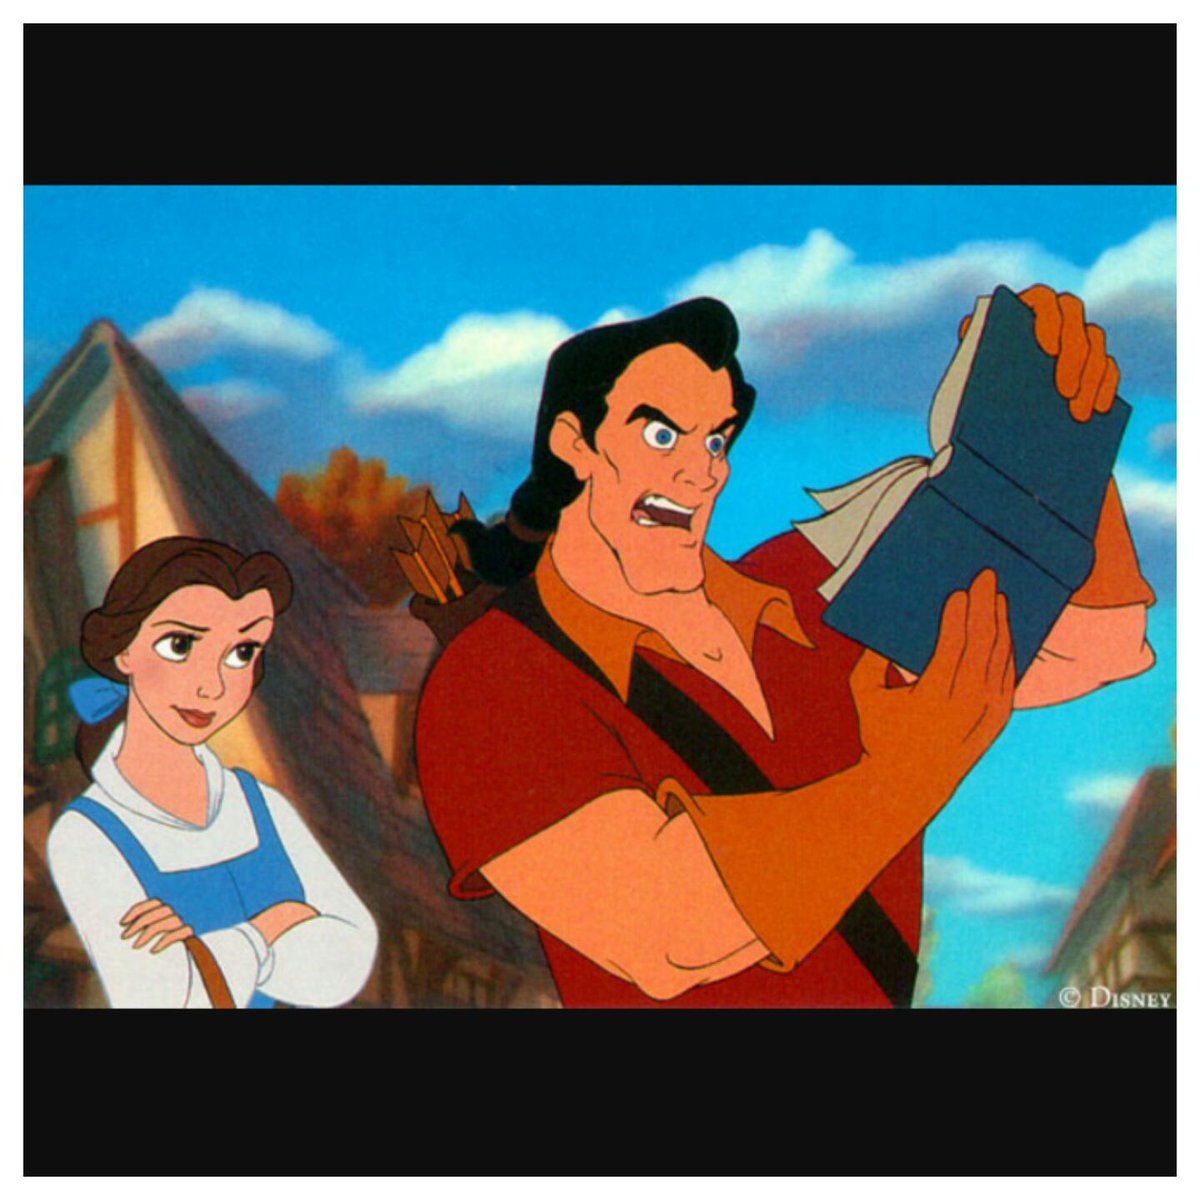 The world needs more #Belle and less #Gaston. <br>http://pic.twitter.com/wv8O1ZoR77